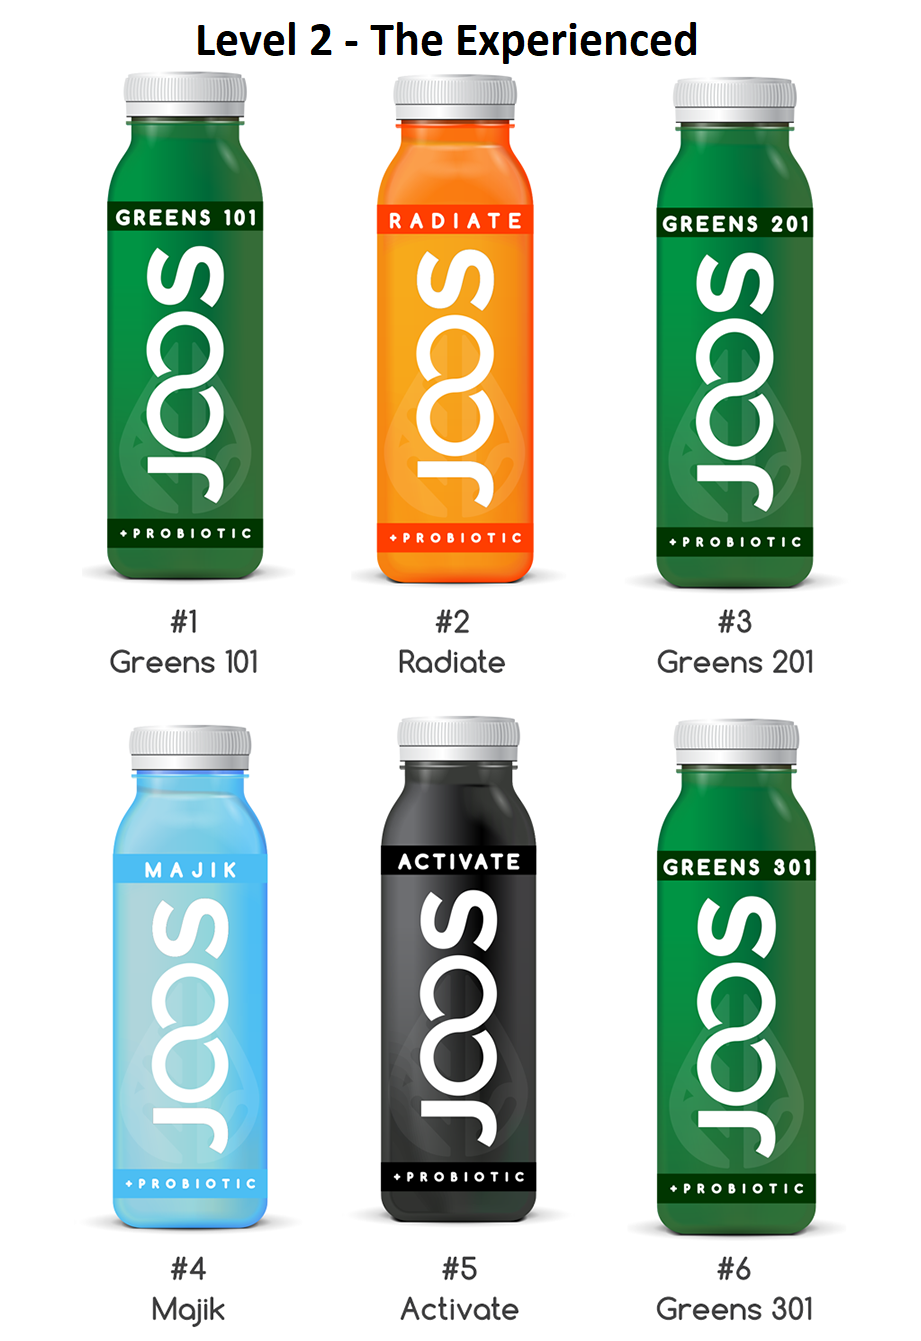 JOOS - Cold Pressed Juice - Cleanse Level 2 - The Experienced